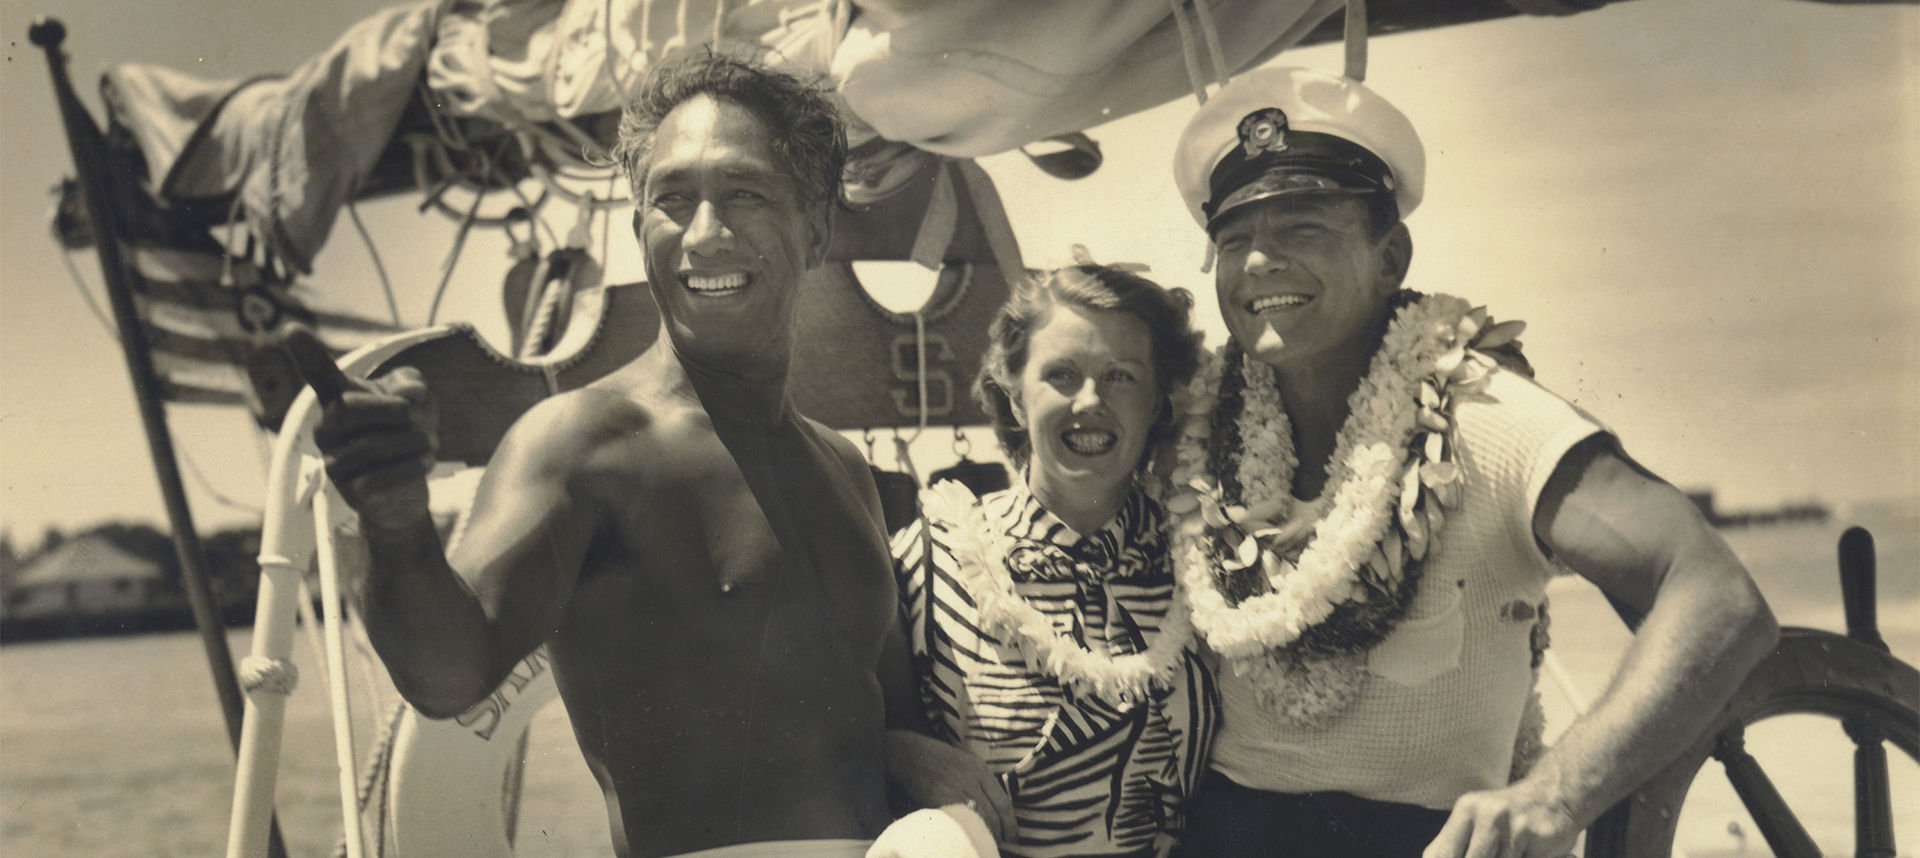 Duke Kahanamoku and 2 others